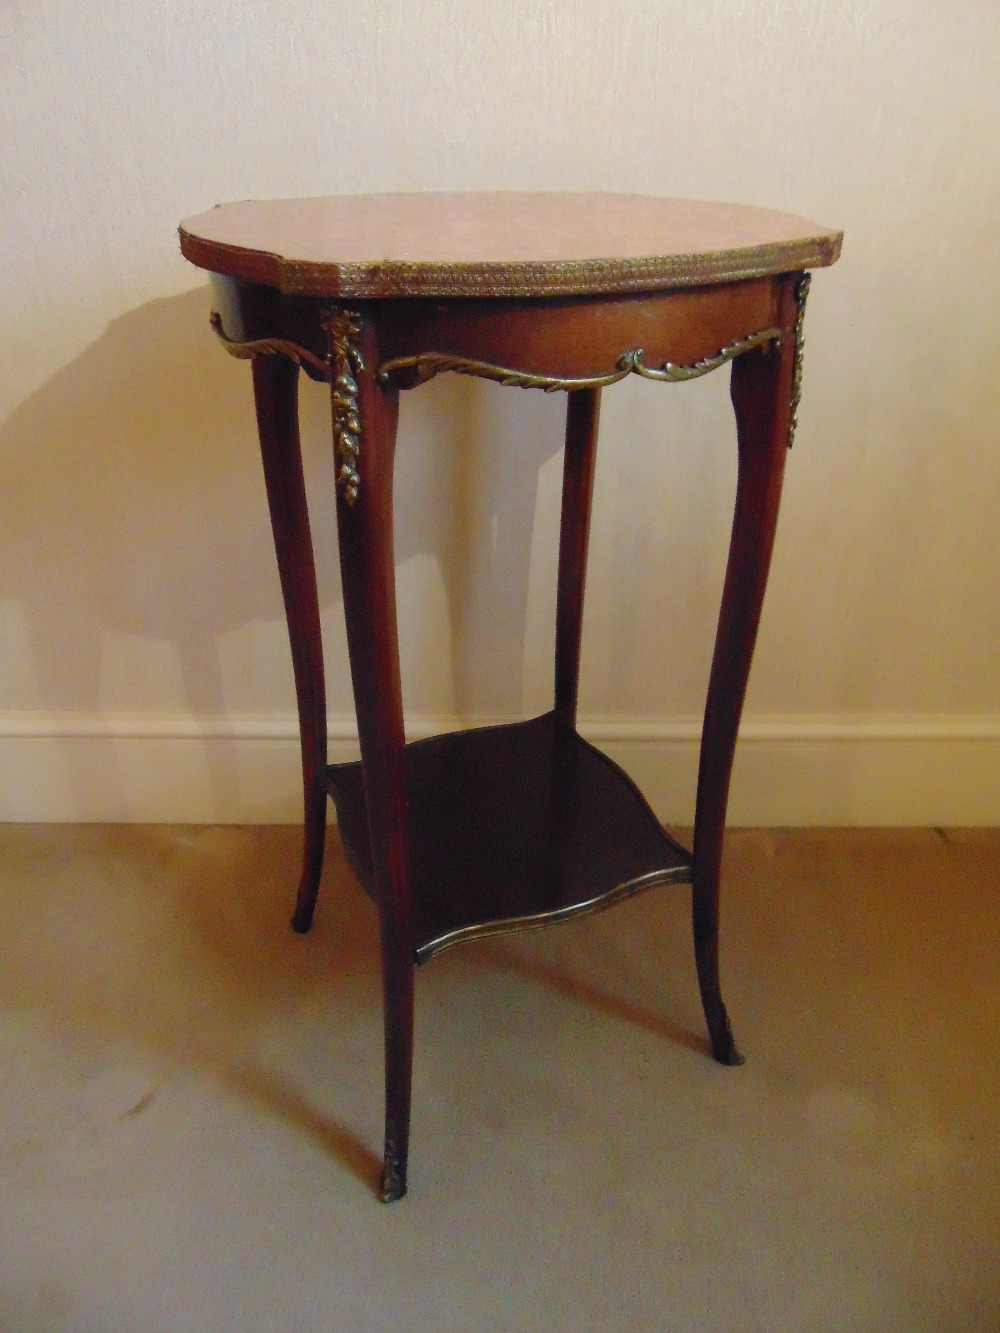 Lot 14 - A mahogany side table of shaped rectangular form with marble top and cabriole legs